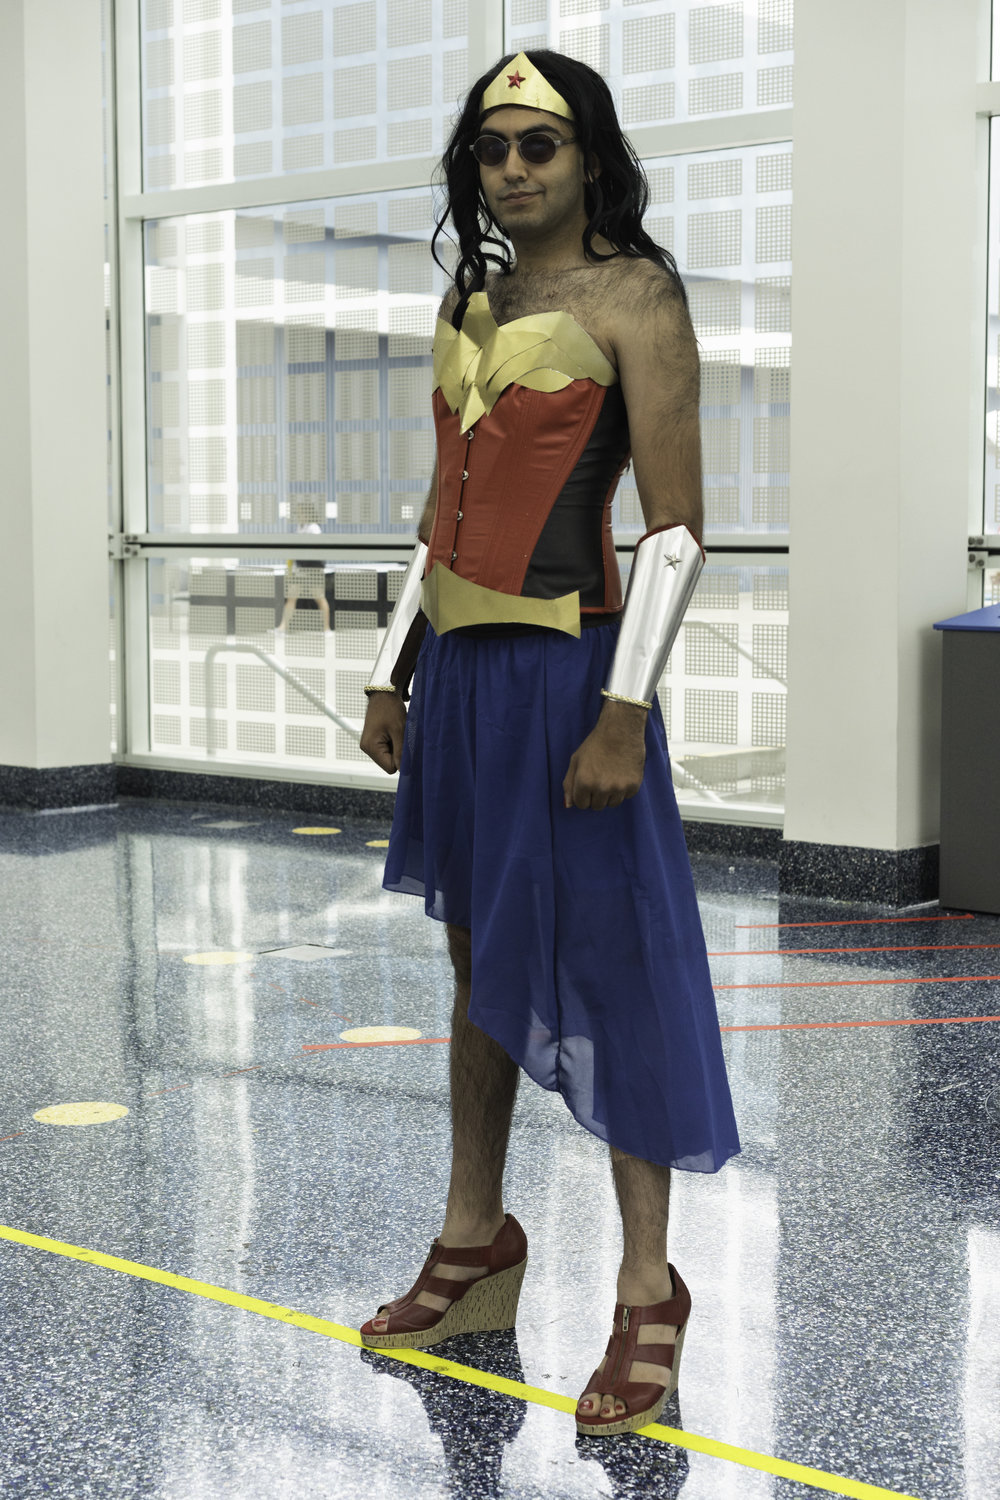 WonderMan_Anime_Expo__July4_2015.jpg